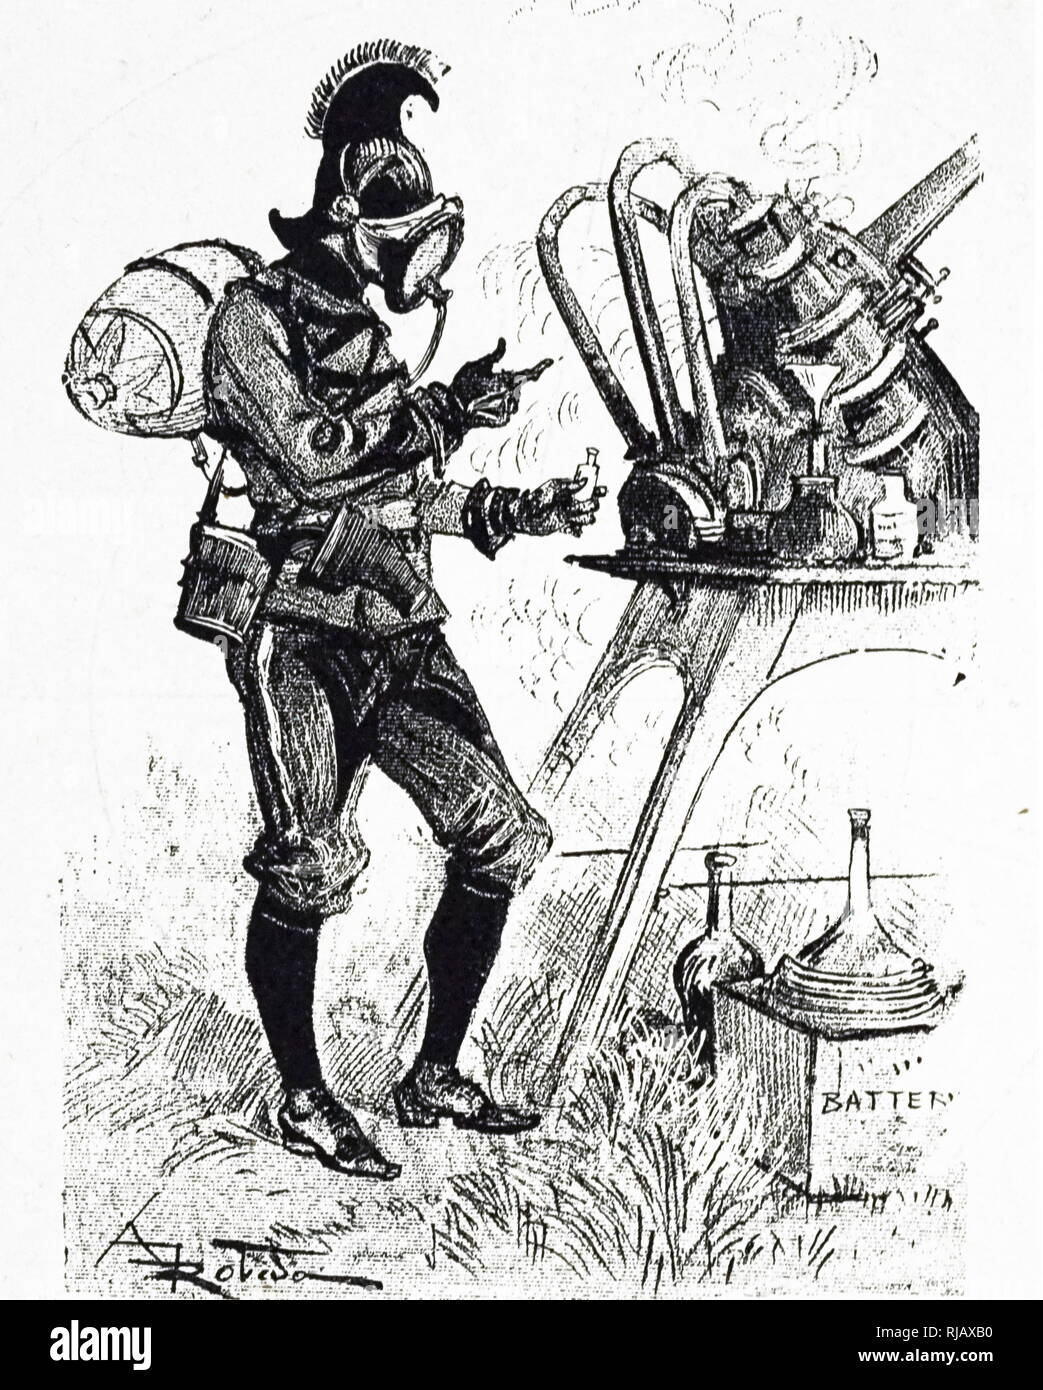 An engraving depicting an author's idea of warfare corps in the 1950s: a lieutenant in the chemical warfare corps. Dated 19th century - Stock Image